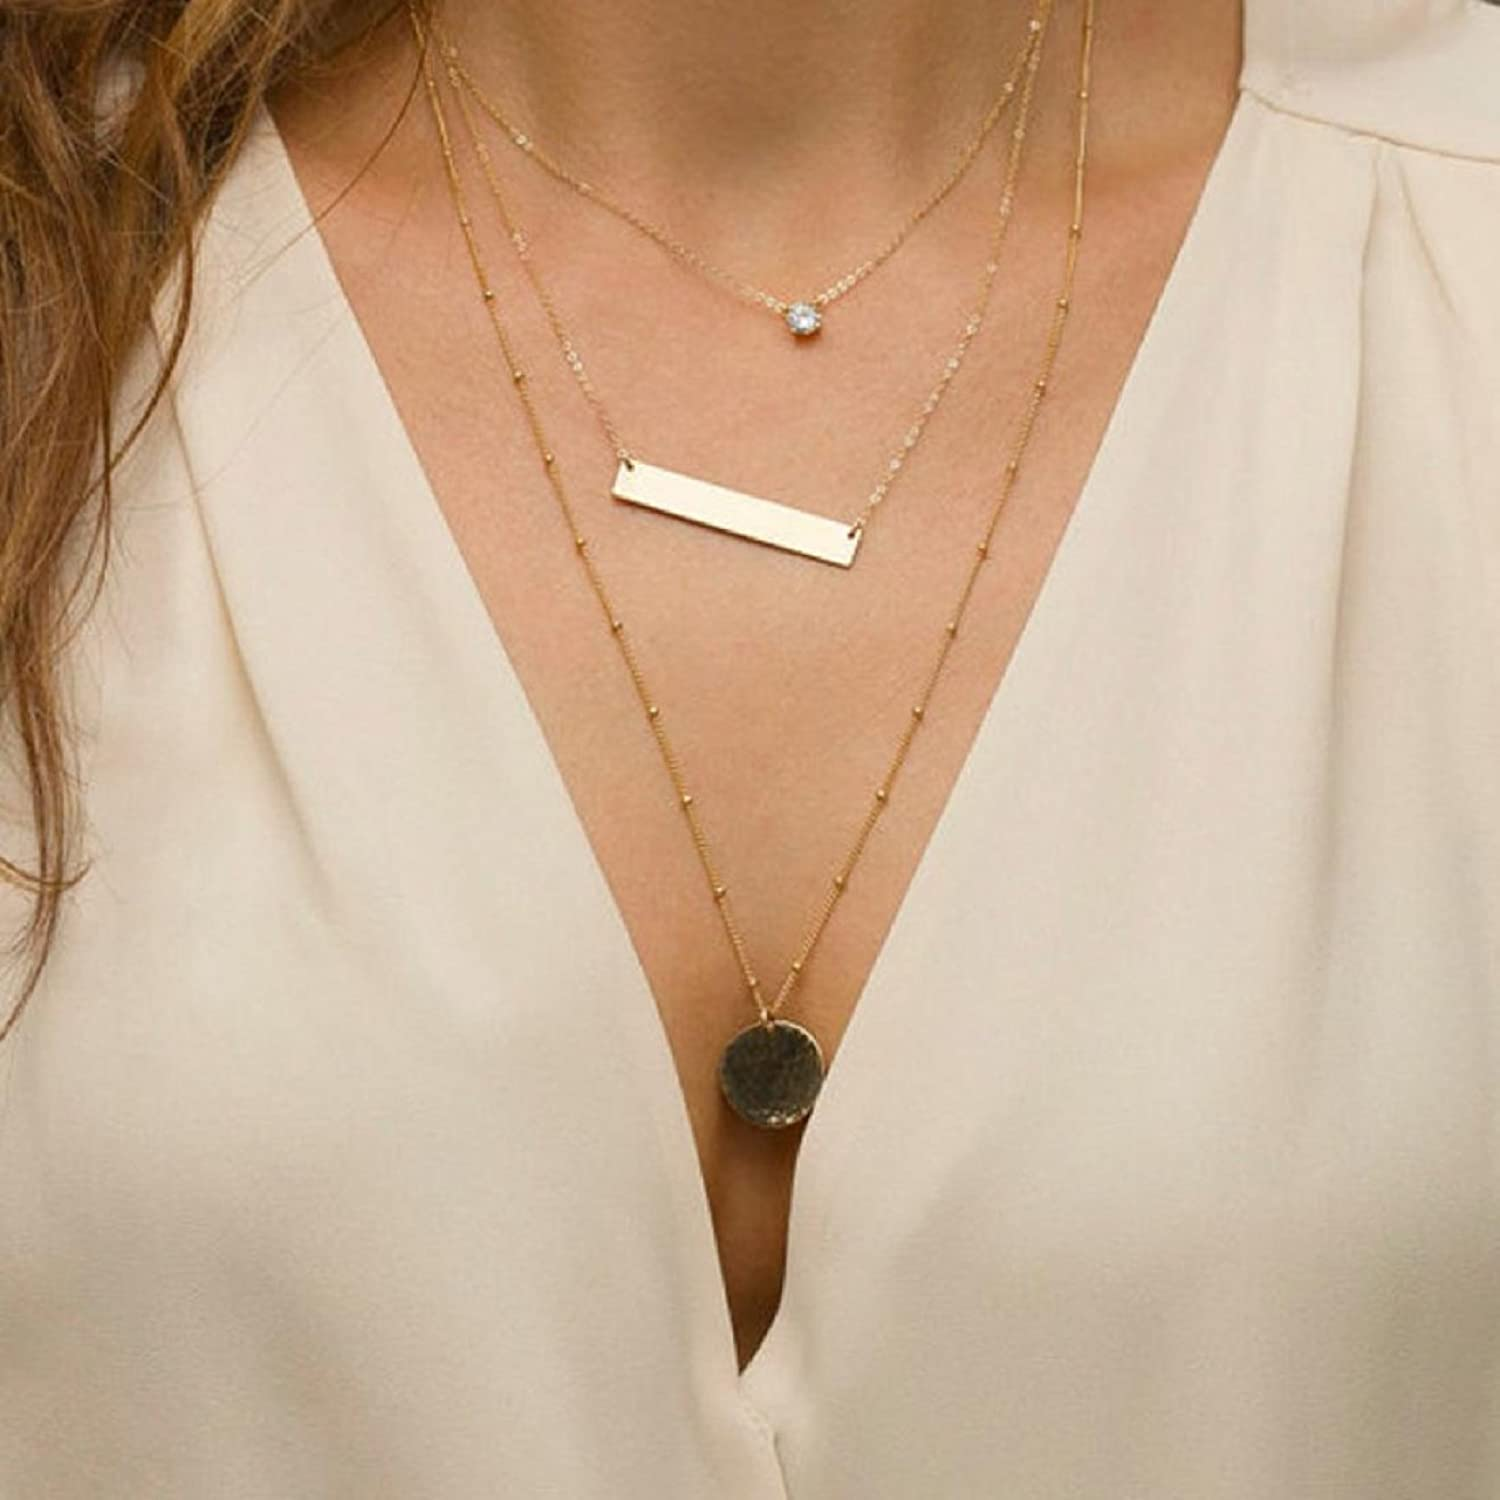 necklace soko paddlependant accompany pendant brass featuring products paddle polished new simple statement silhouette